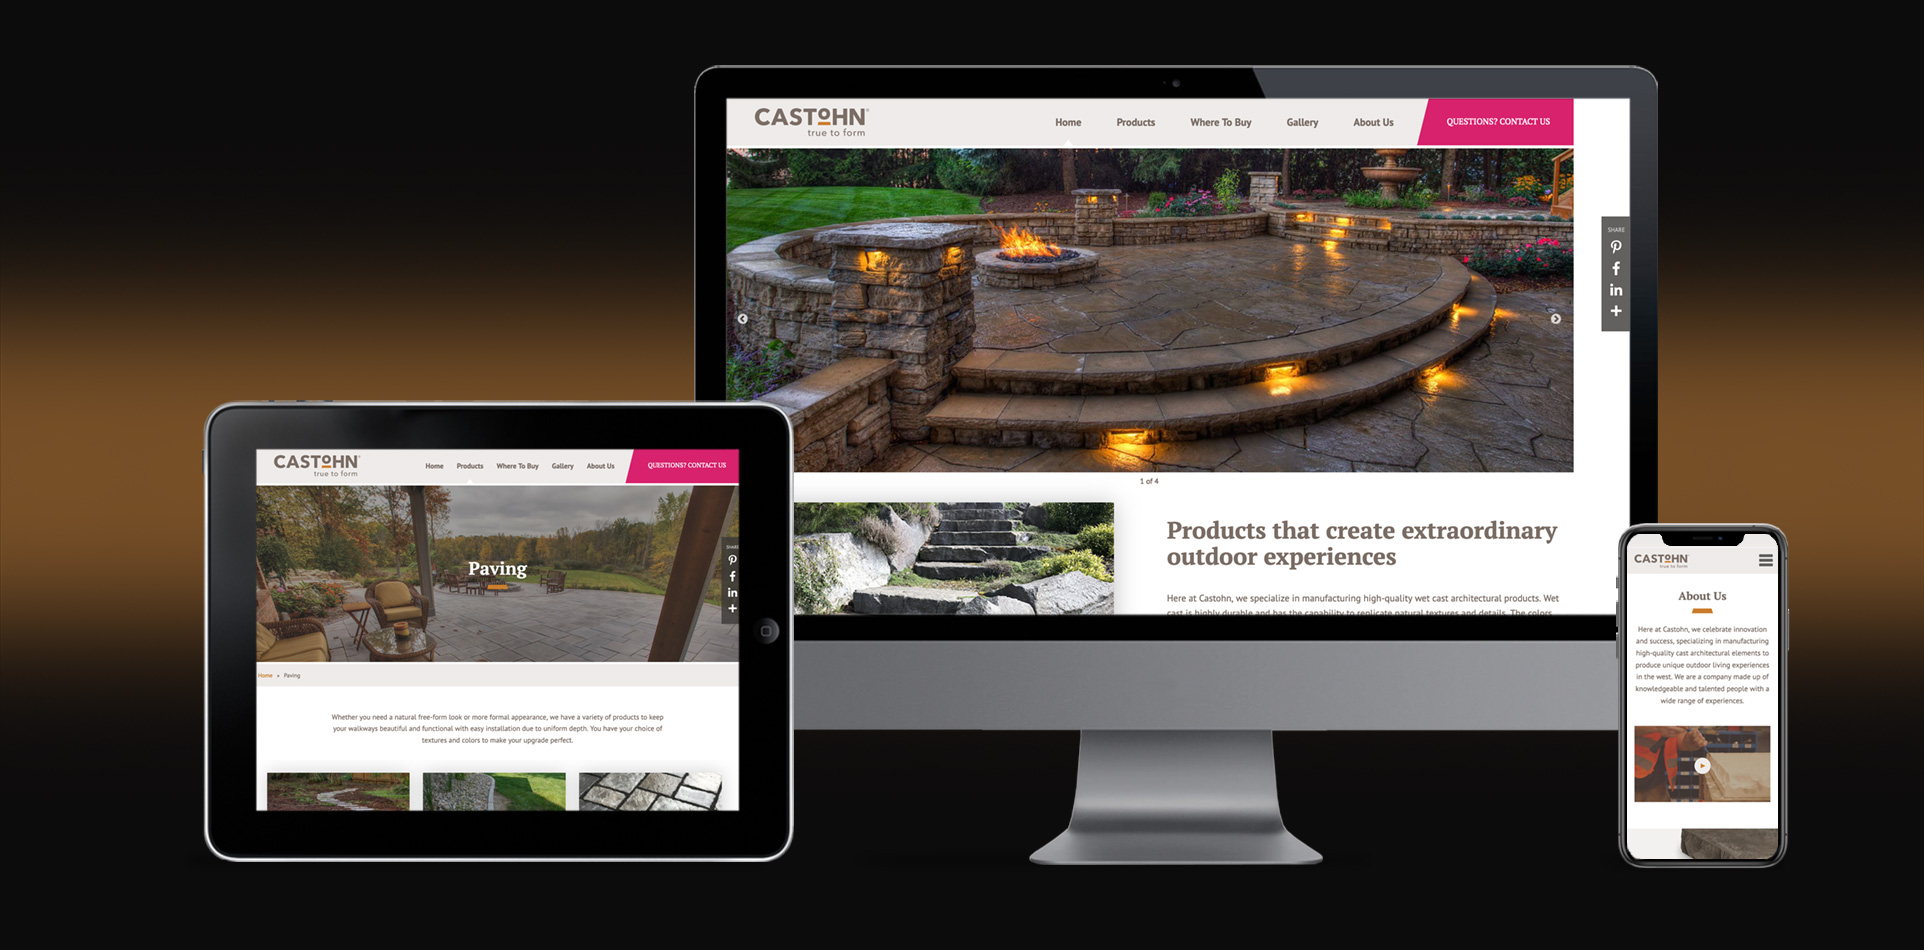 castohn manufacturing high-quality wet cast architectural products website branding and marketing design